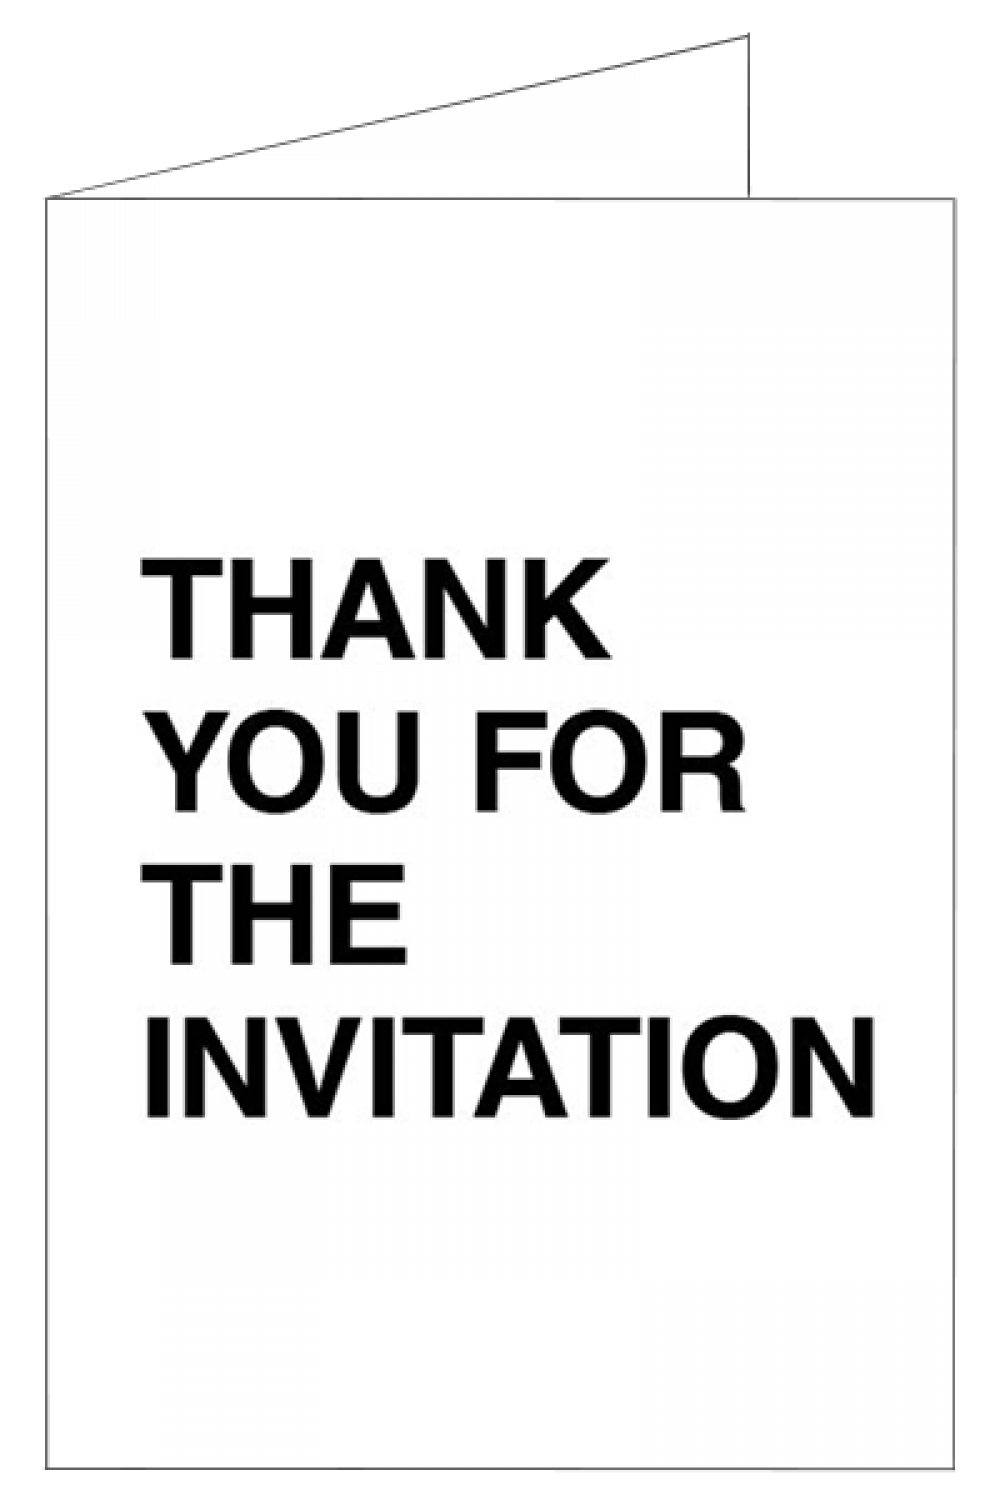 Thank you for the invitation, but... - Invitation RSVP cards